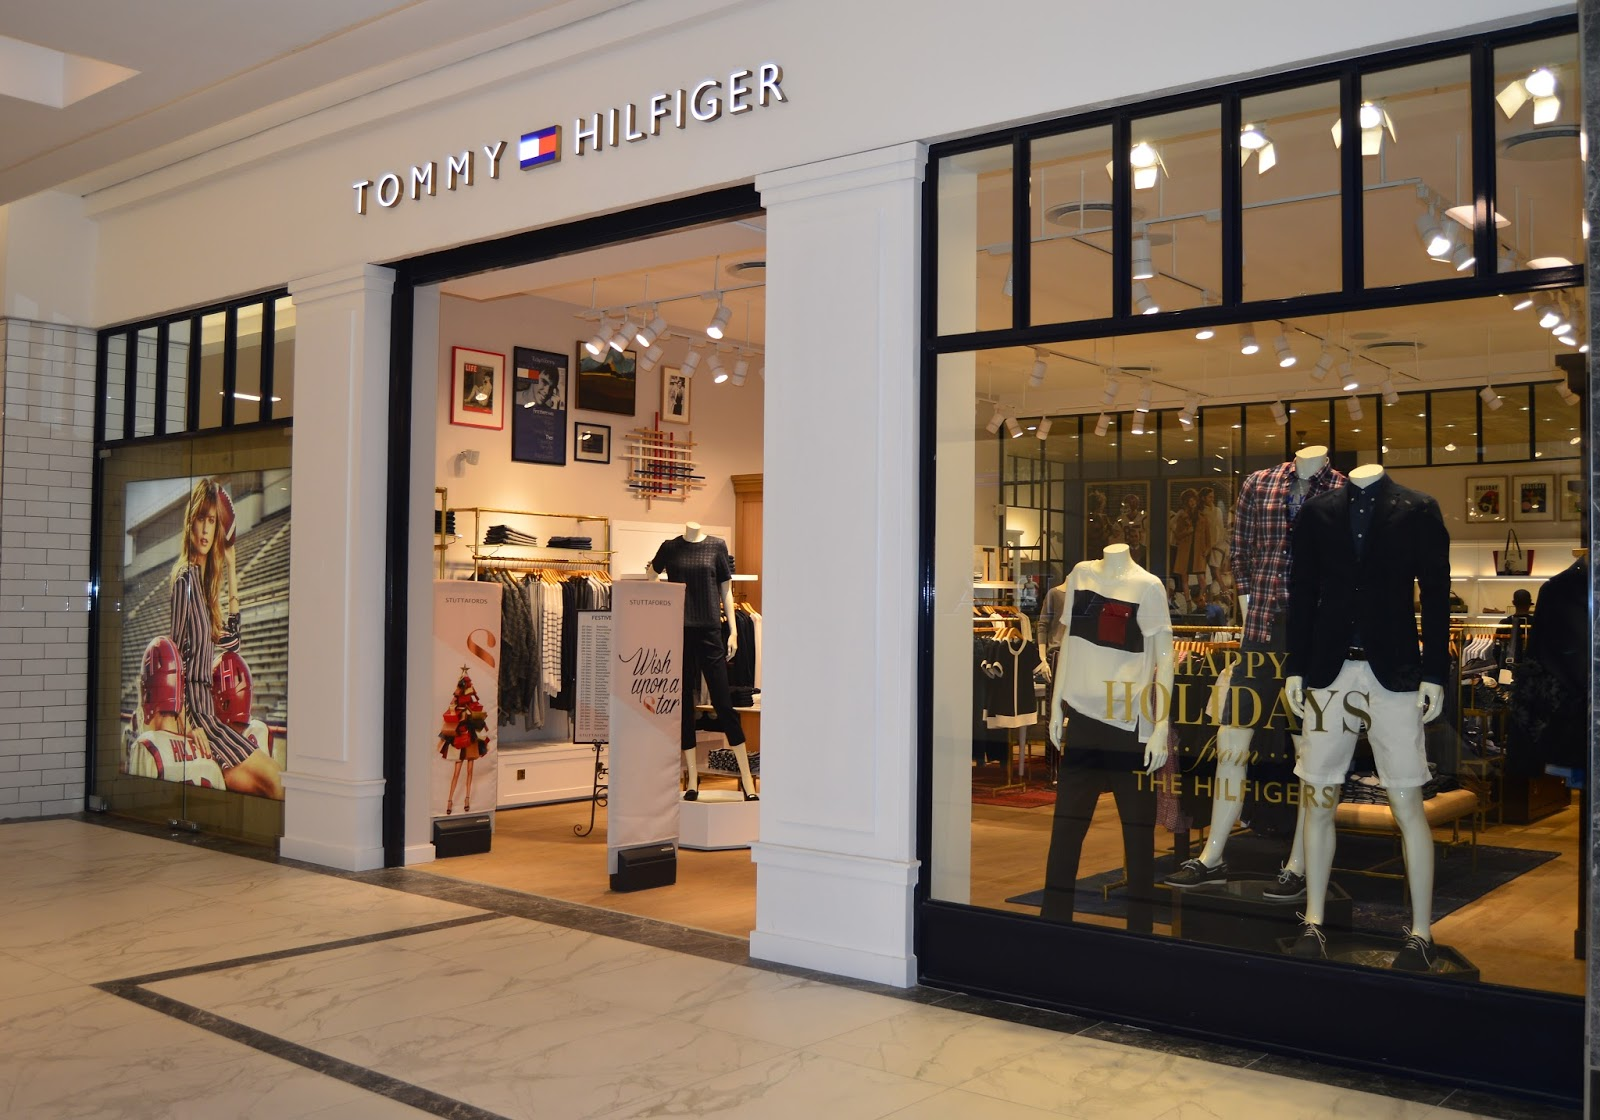 buy tommy hilfiger online with complete convenience You can buy Tommy Hilfiger merchandise with complete ease at Myntra. Shop online using our simplified browsing, selection and payment procedures for a hassle-free experience.